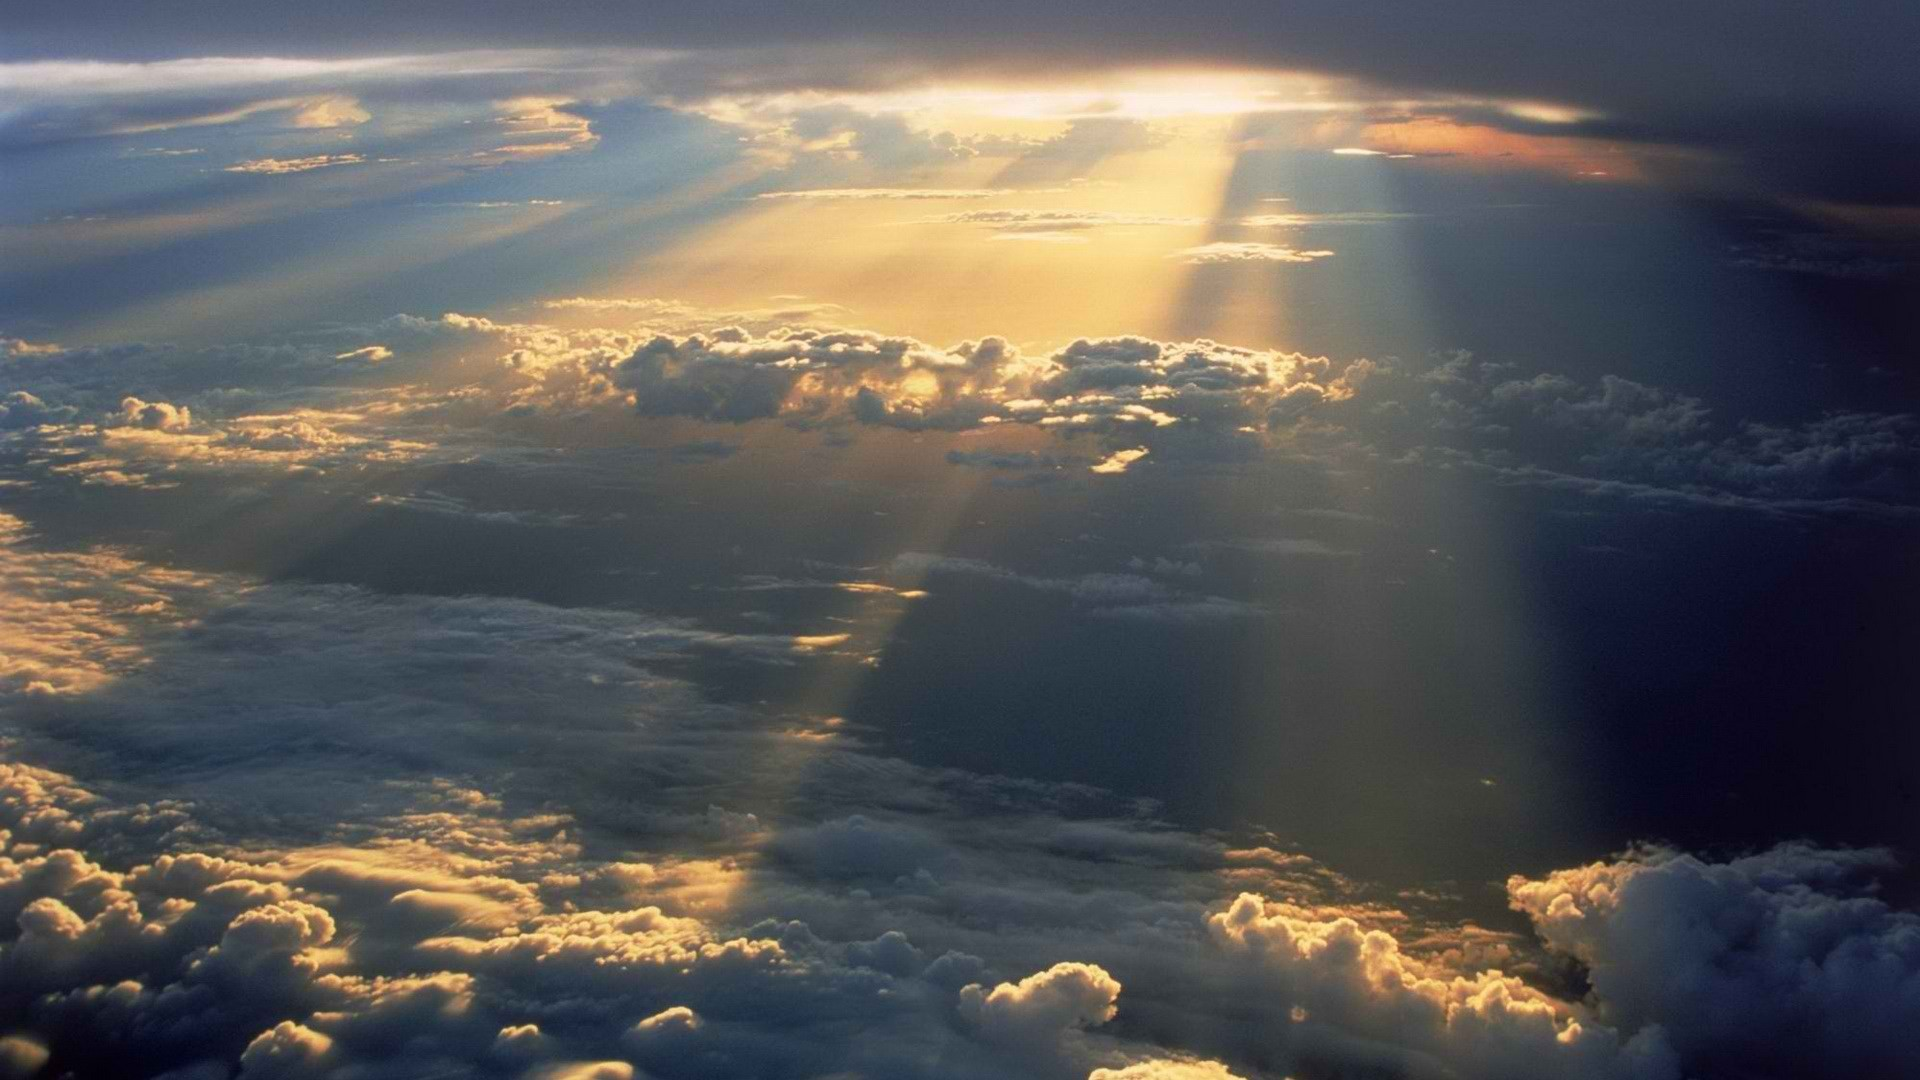 Heaven wallpaper ·① Download free cool HD backgrounds for ...